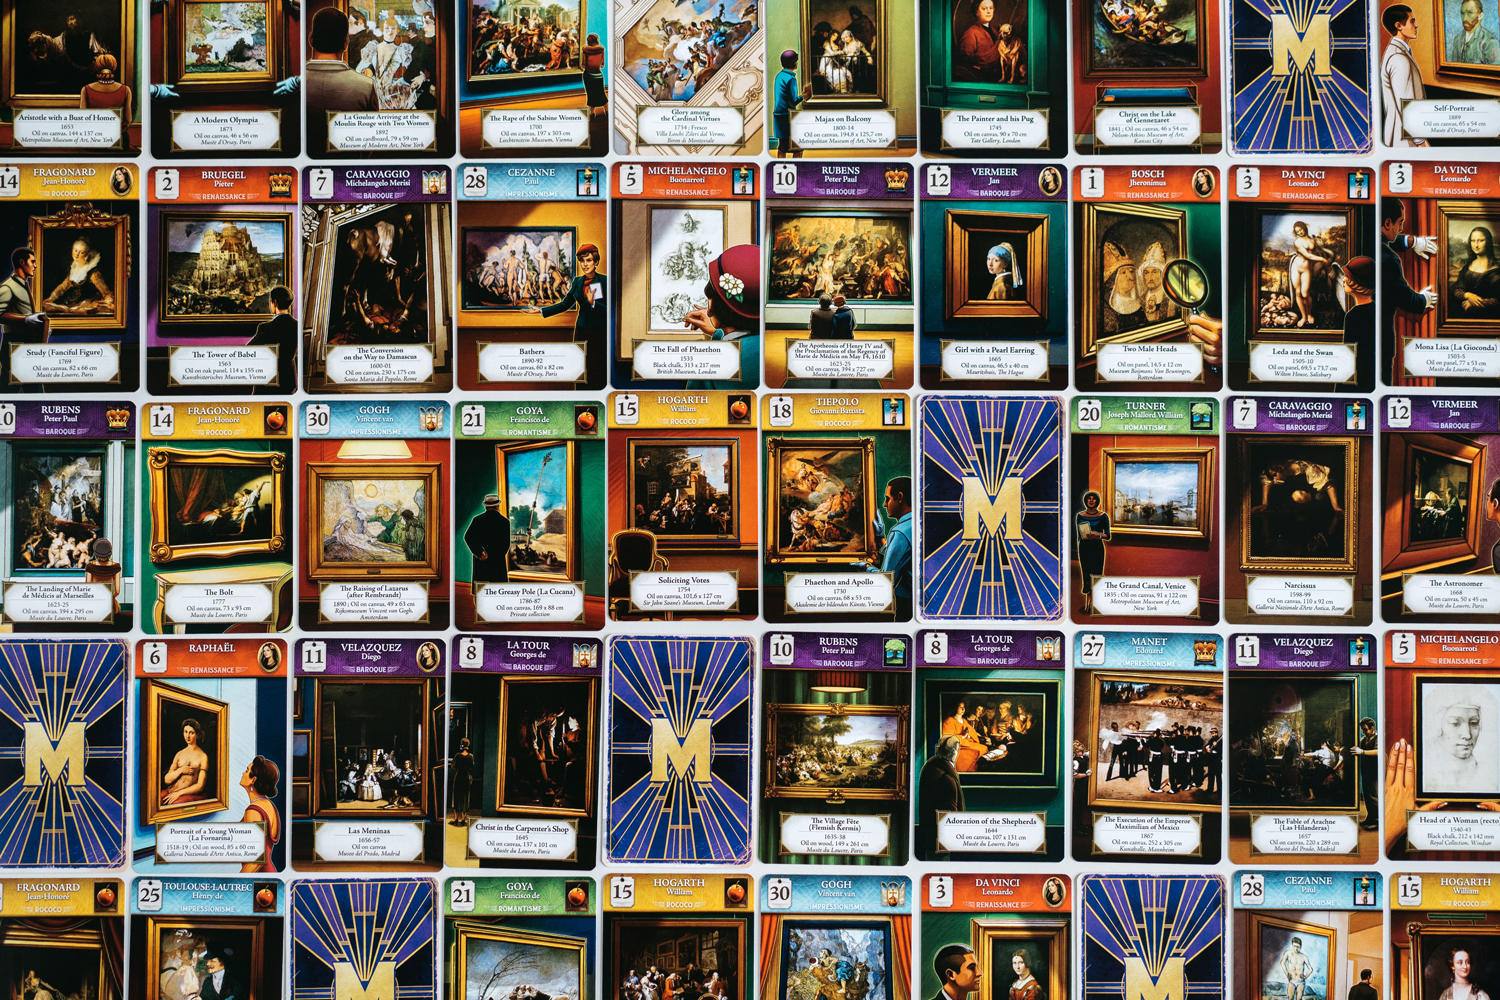 museum-pictura-all-cards.jpg